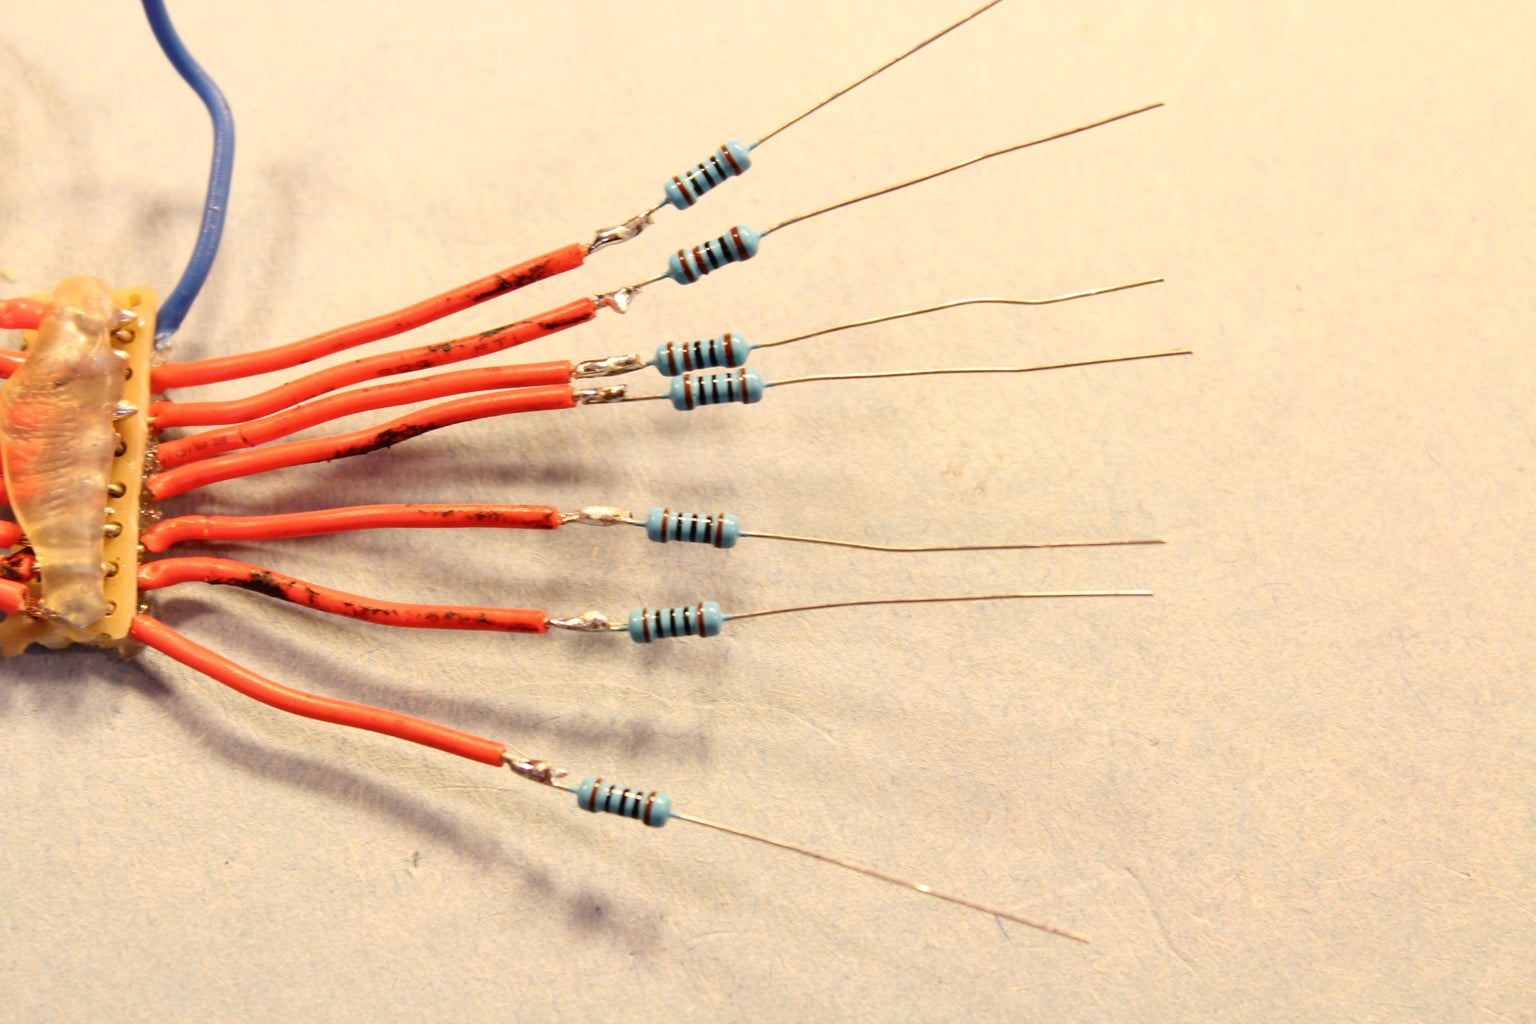 [UPDATE] Adding Resistors for the LEDs